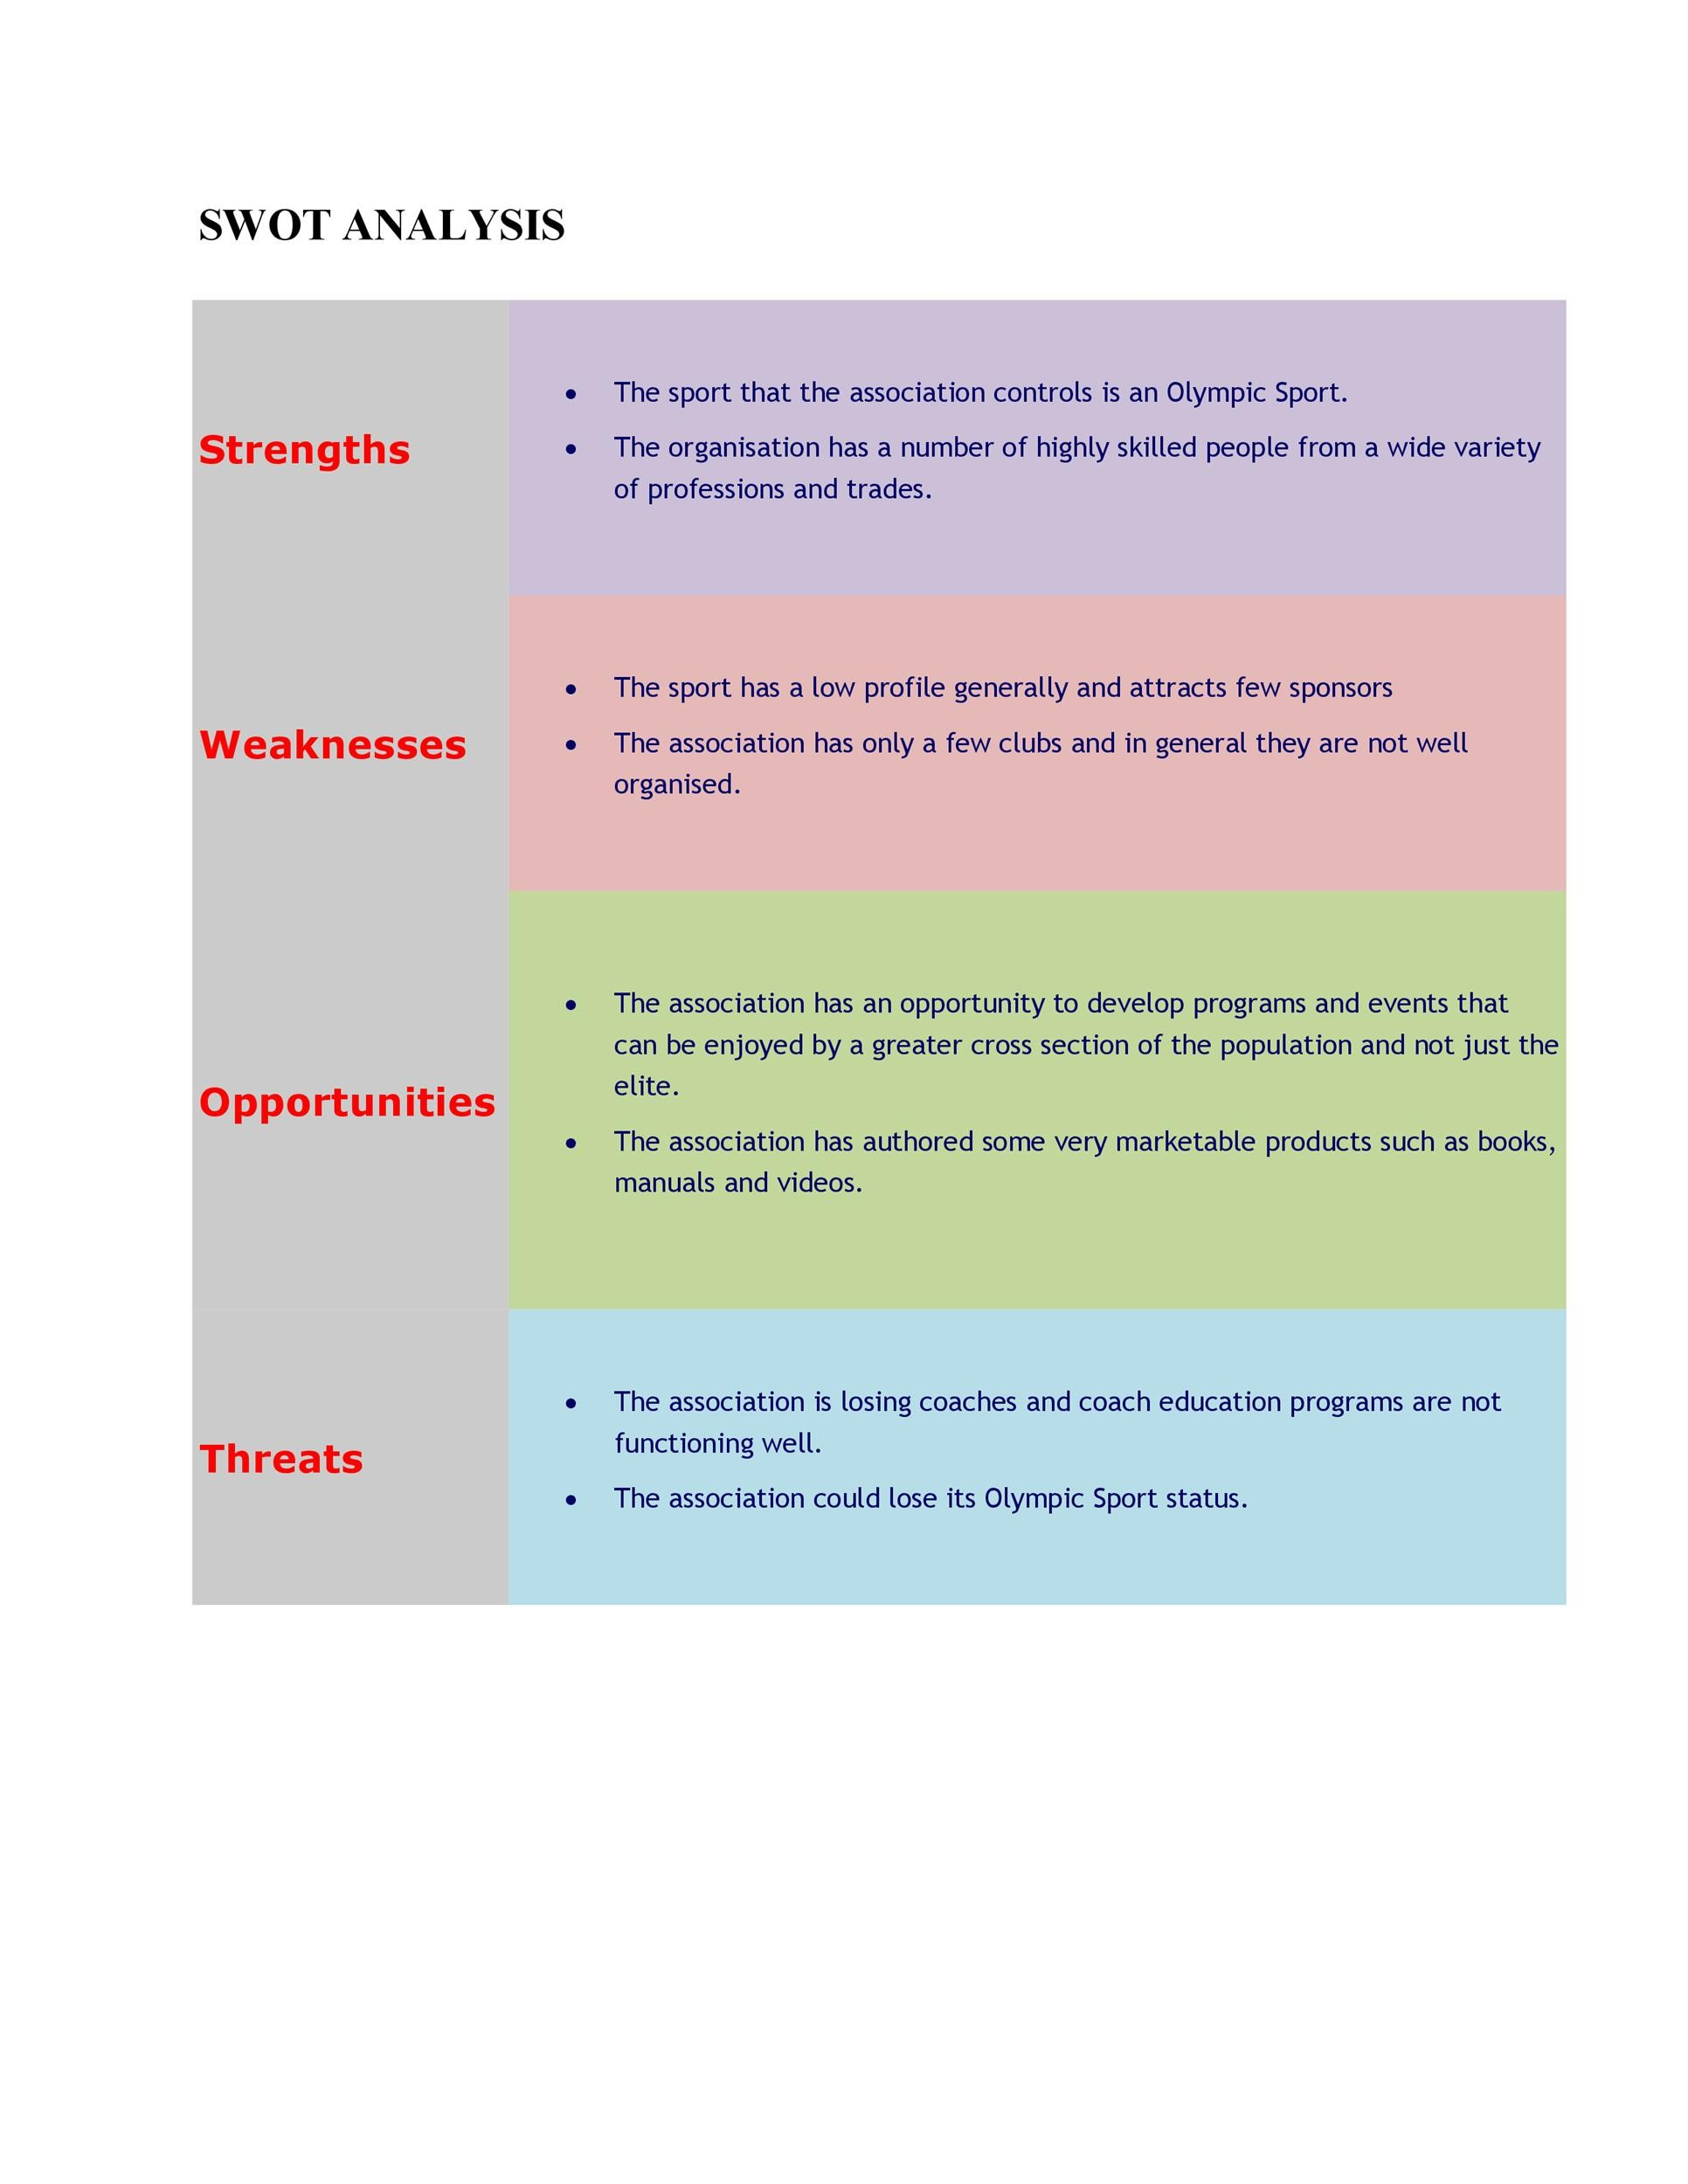 40 powerful swot analysis templates examples free swot analysis template 03 accmission Gallery